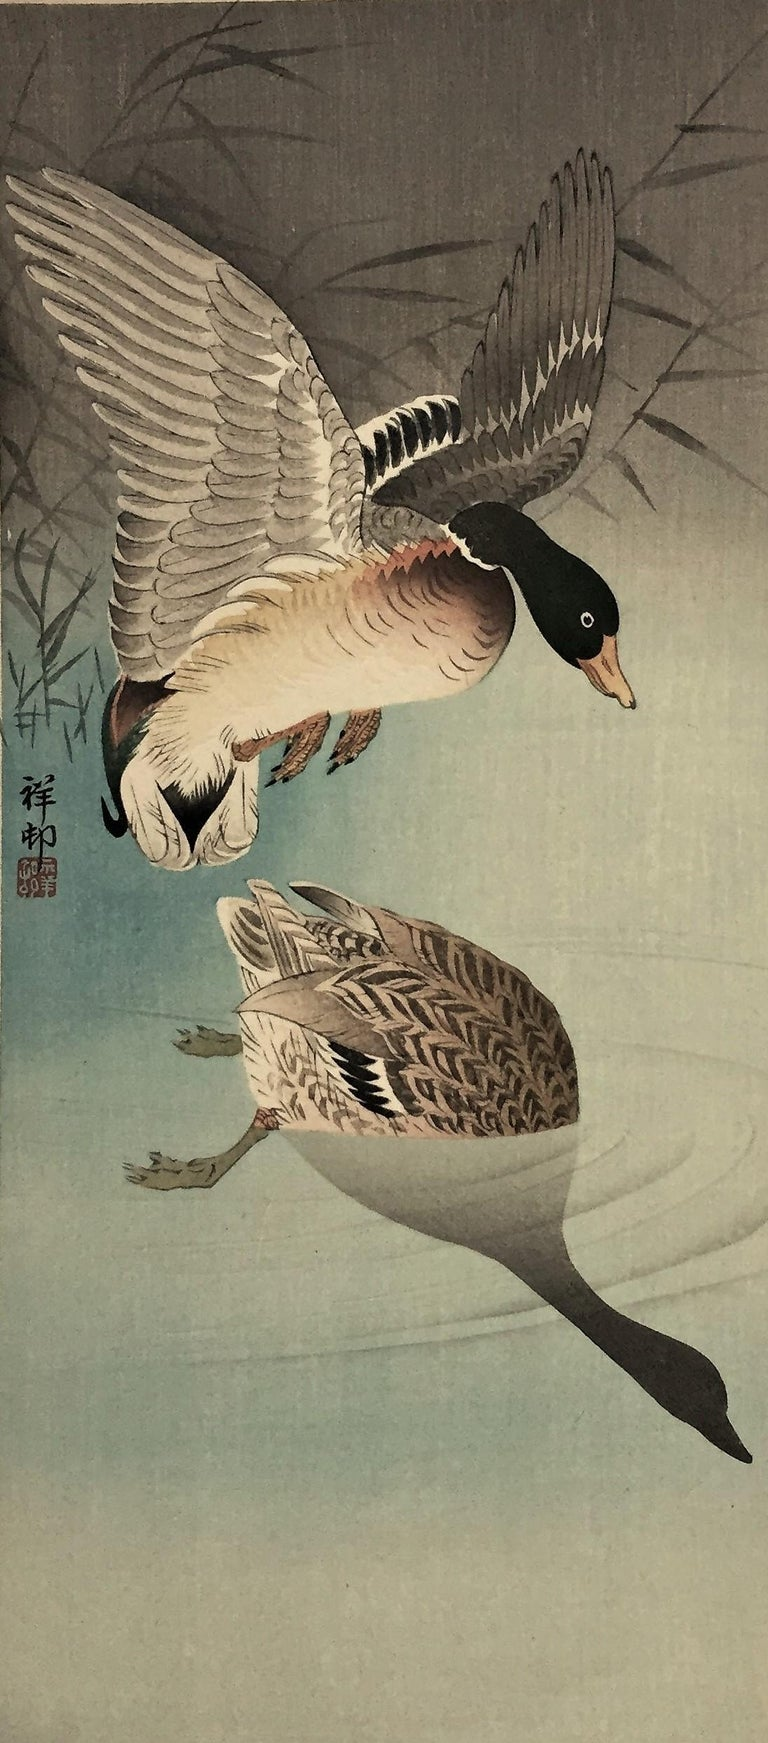 Two Wild Ducks in Flight Above Reeds, a Full Moon Behind. - Black Animal Print by Ohara Koson